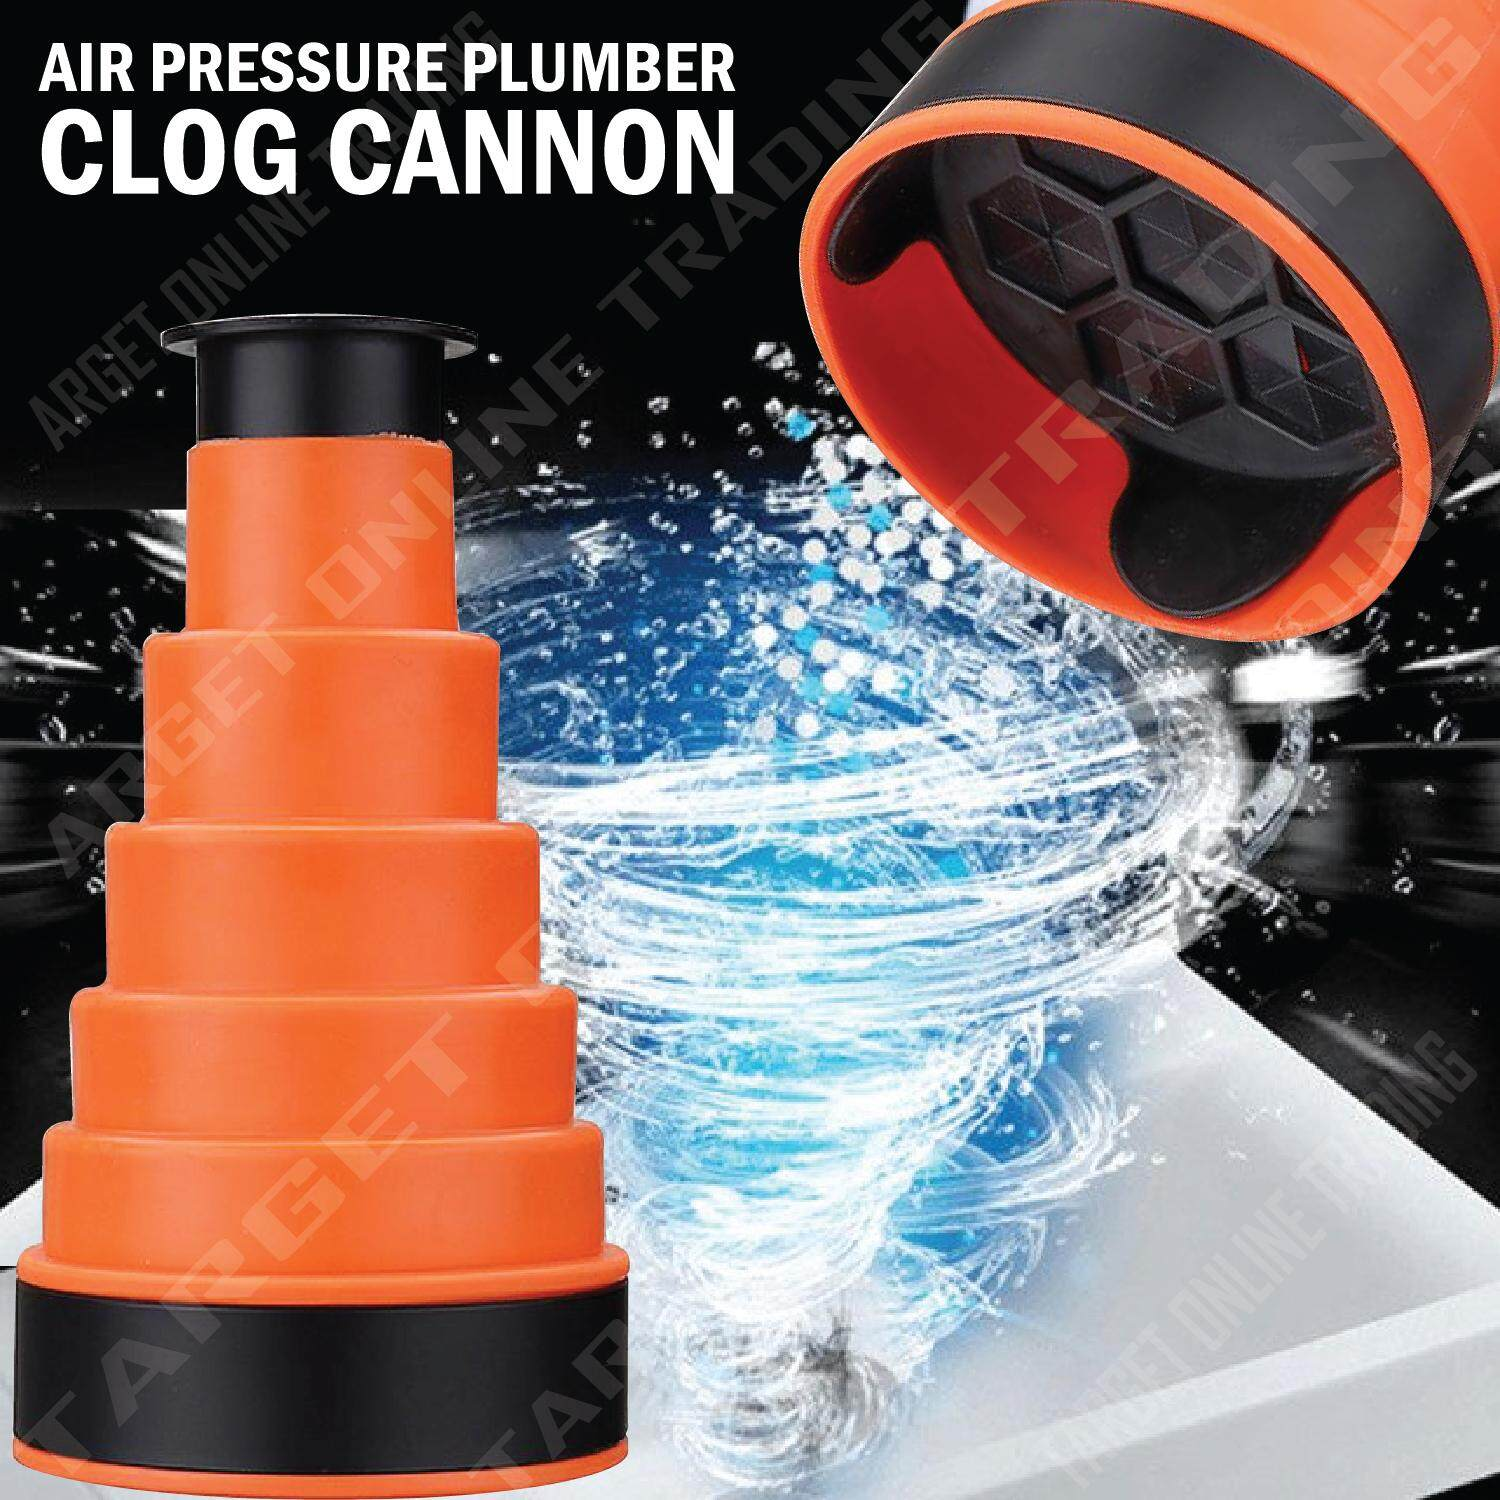 Cannon Clog Air Pressure Plumber Sink Toilet Drain Blaster Clean Pump